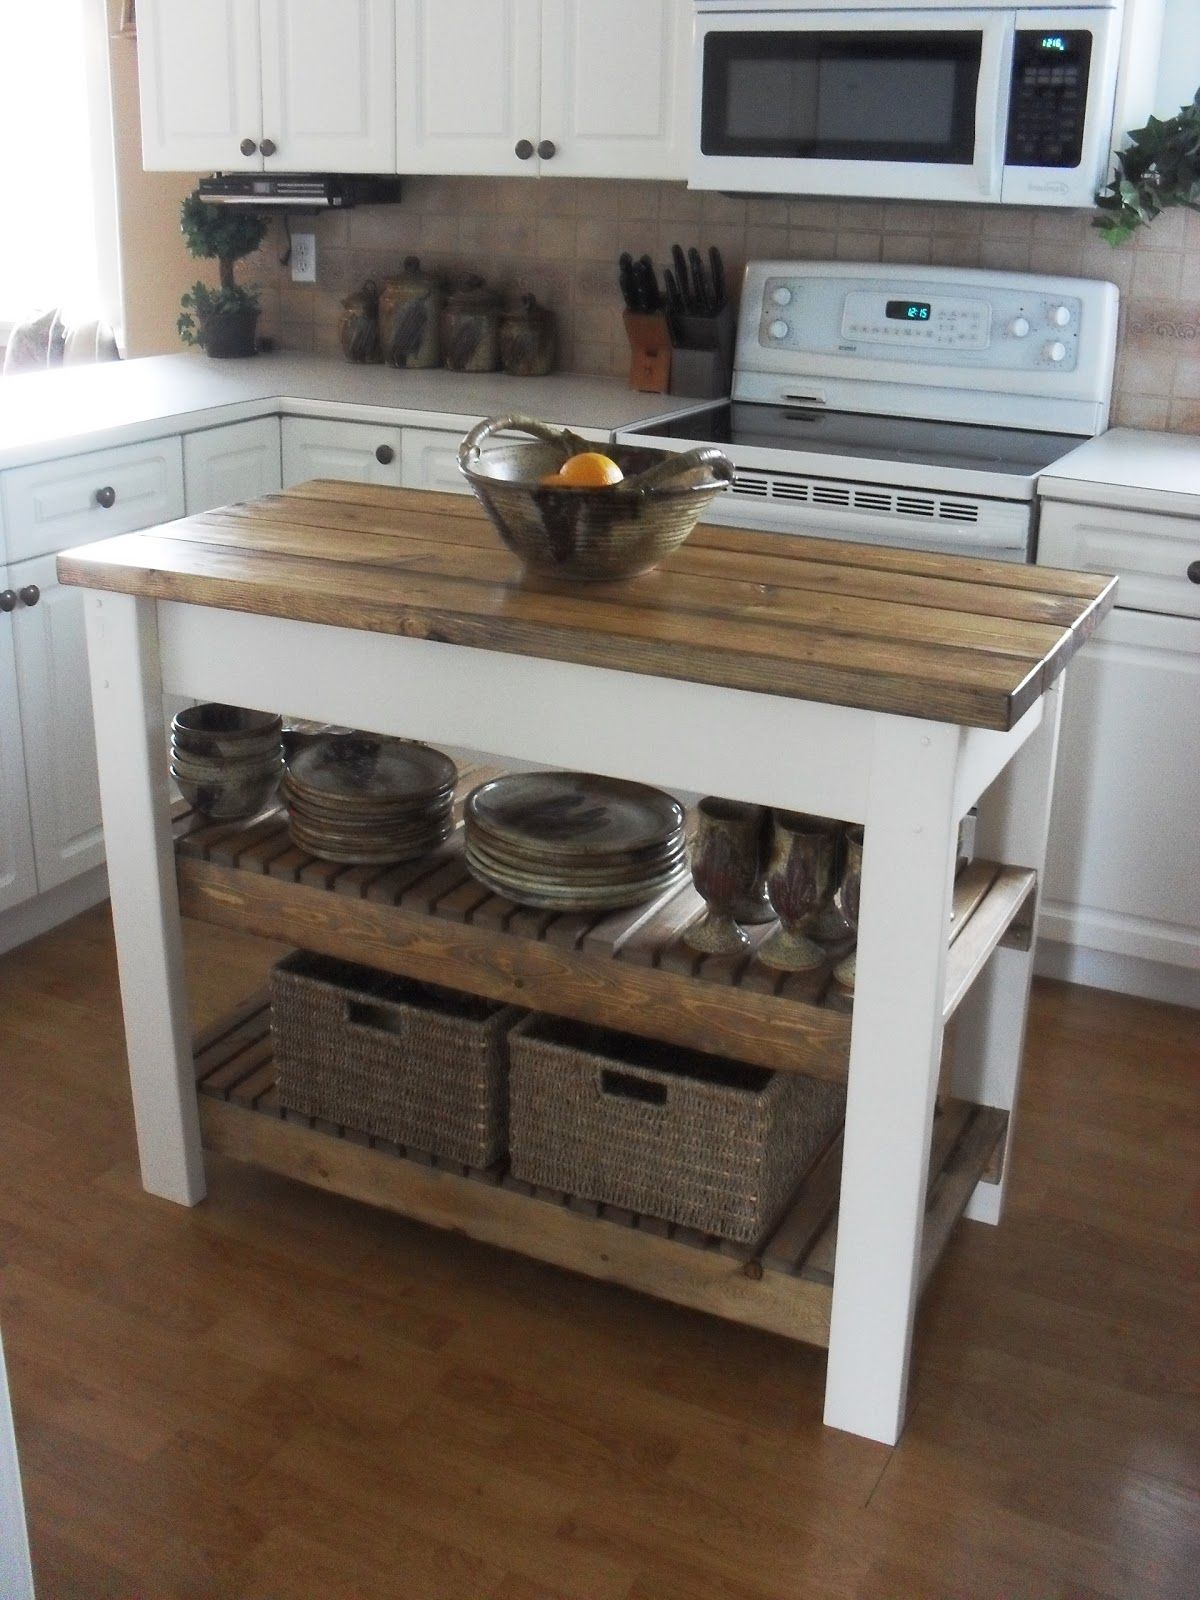 Kitchen Storage Cart Exhaust Vent Cover Small But Stylish Savvy Ideas Any Extra